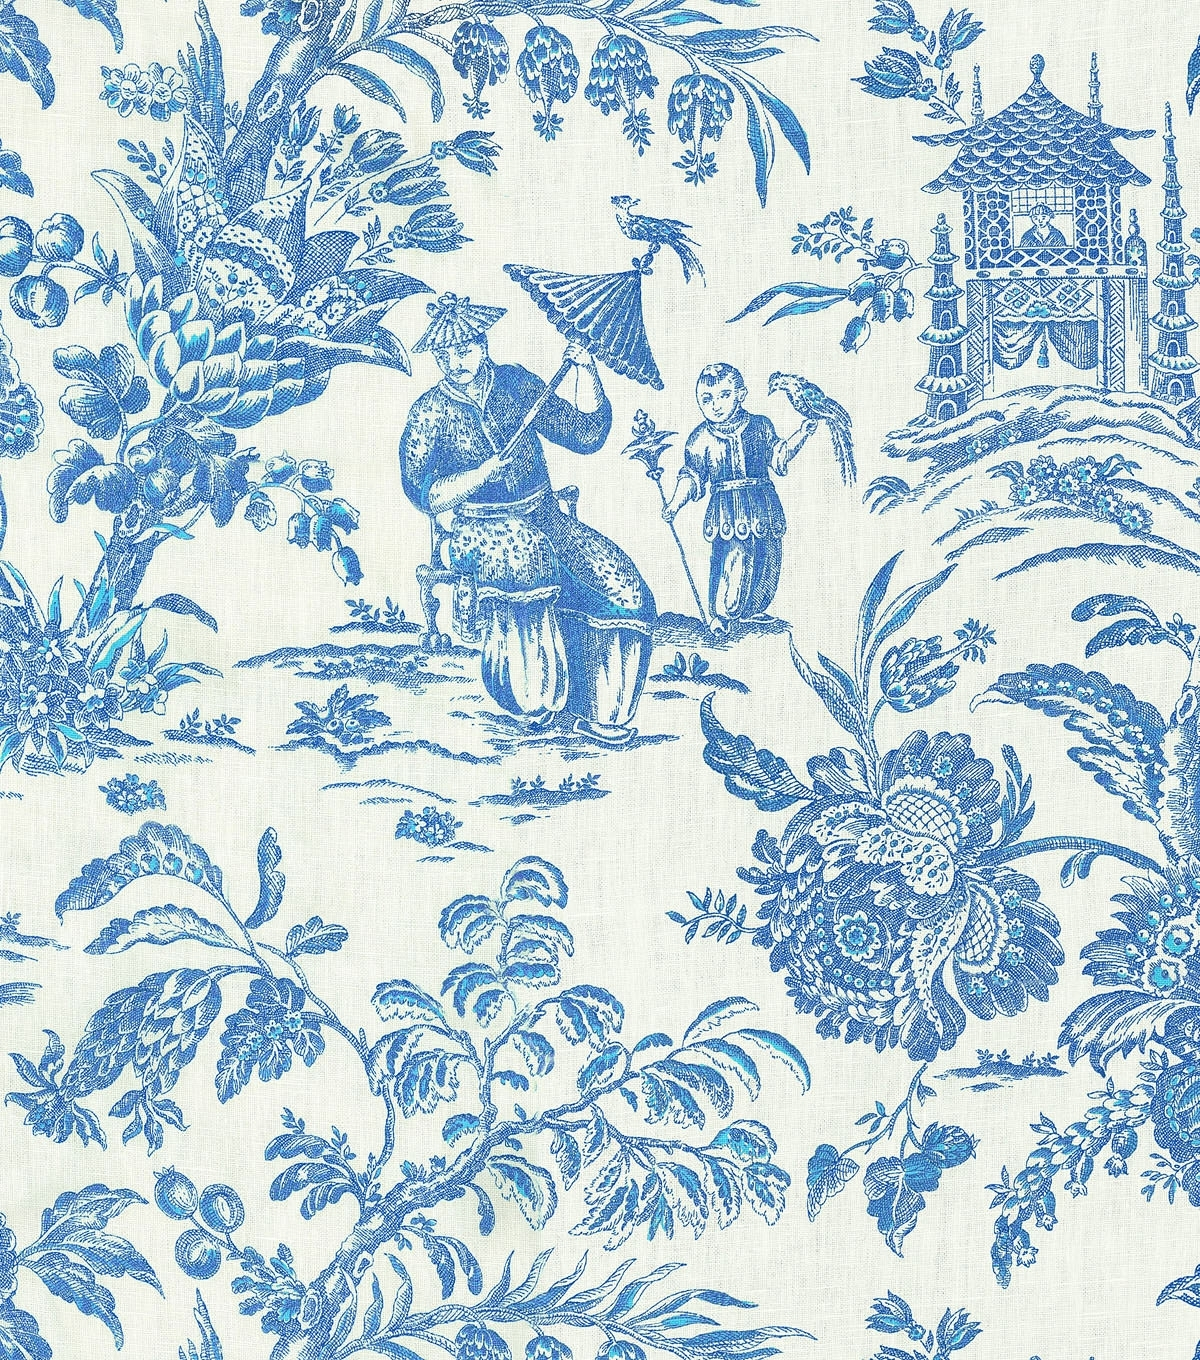 Home Decor Print Fabric Williamsburg Asian Arcadia Sapphire | Joann Regarding 2018 Asian Fabric Wall Art (Gallery 7 of 15)